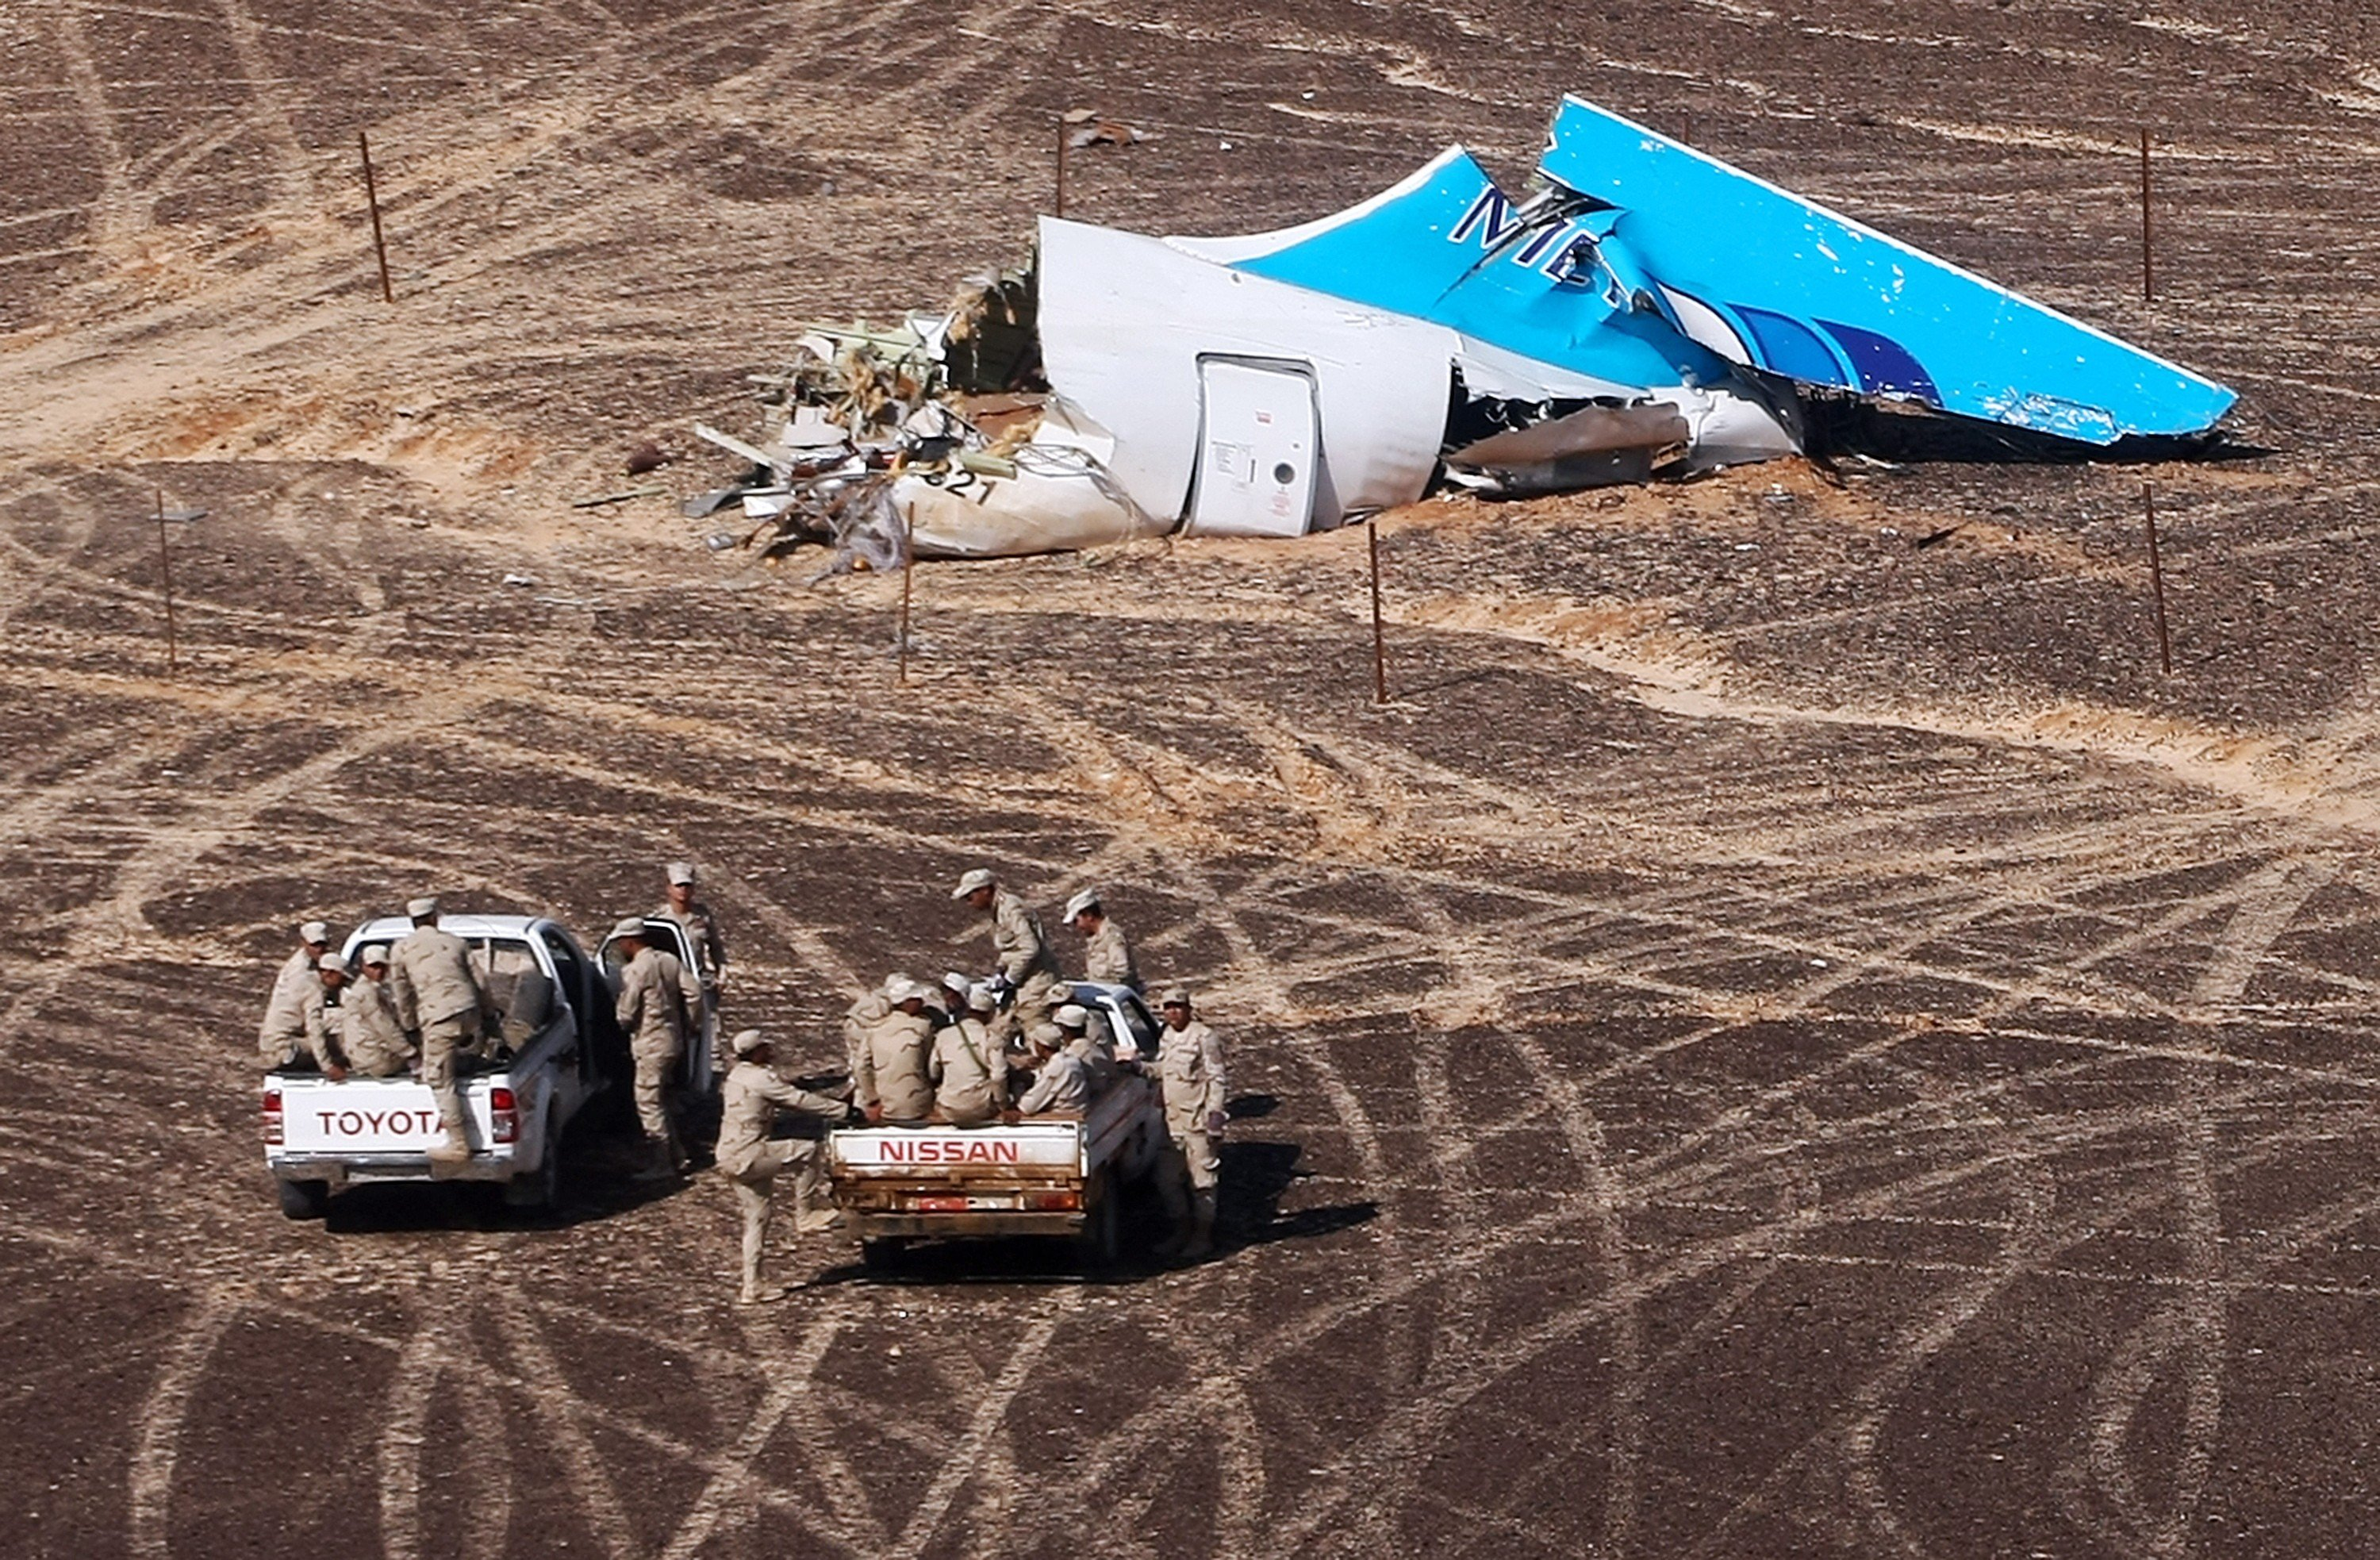 Wreckage at the site where a Russian aircraft crashed in Egypt's Sinai Peninsula near El Arish city, on Nov. 1, 2015.